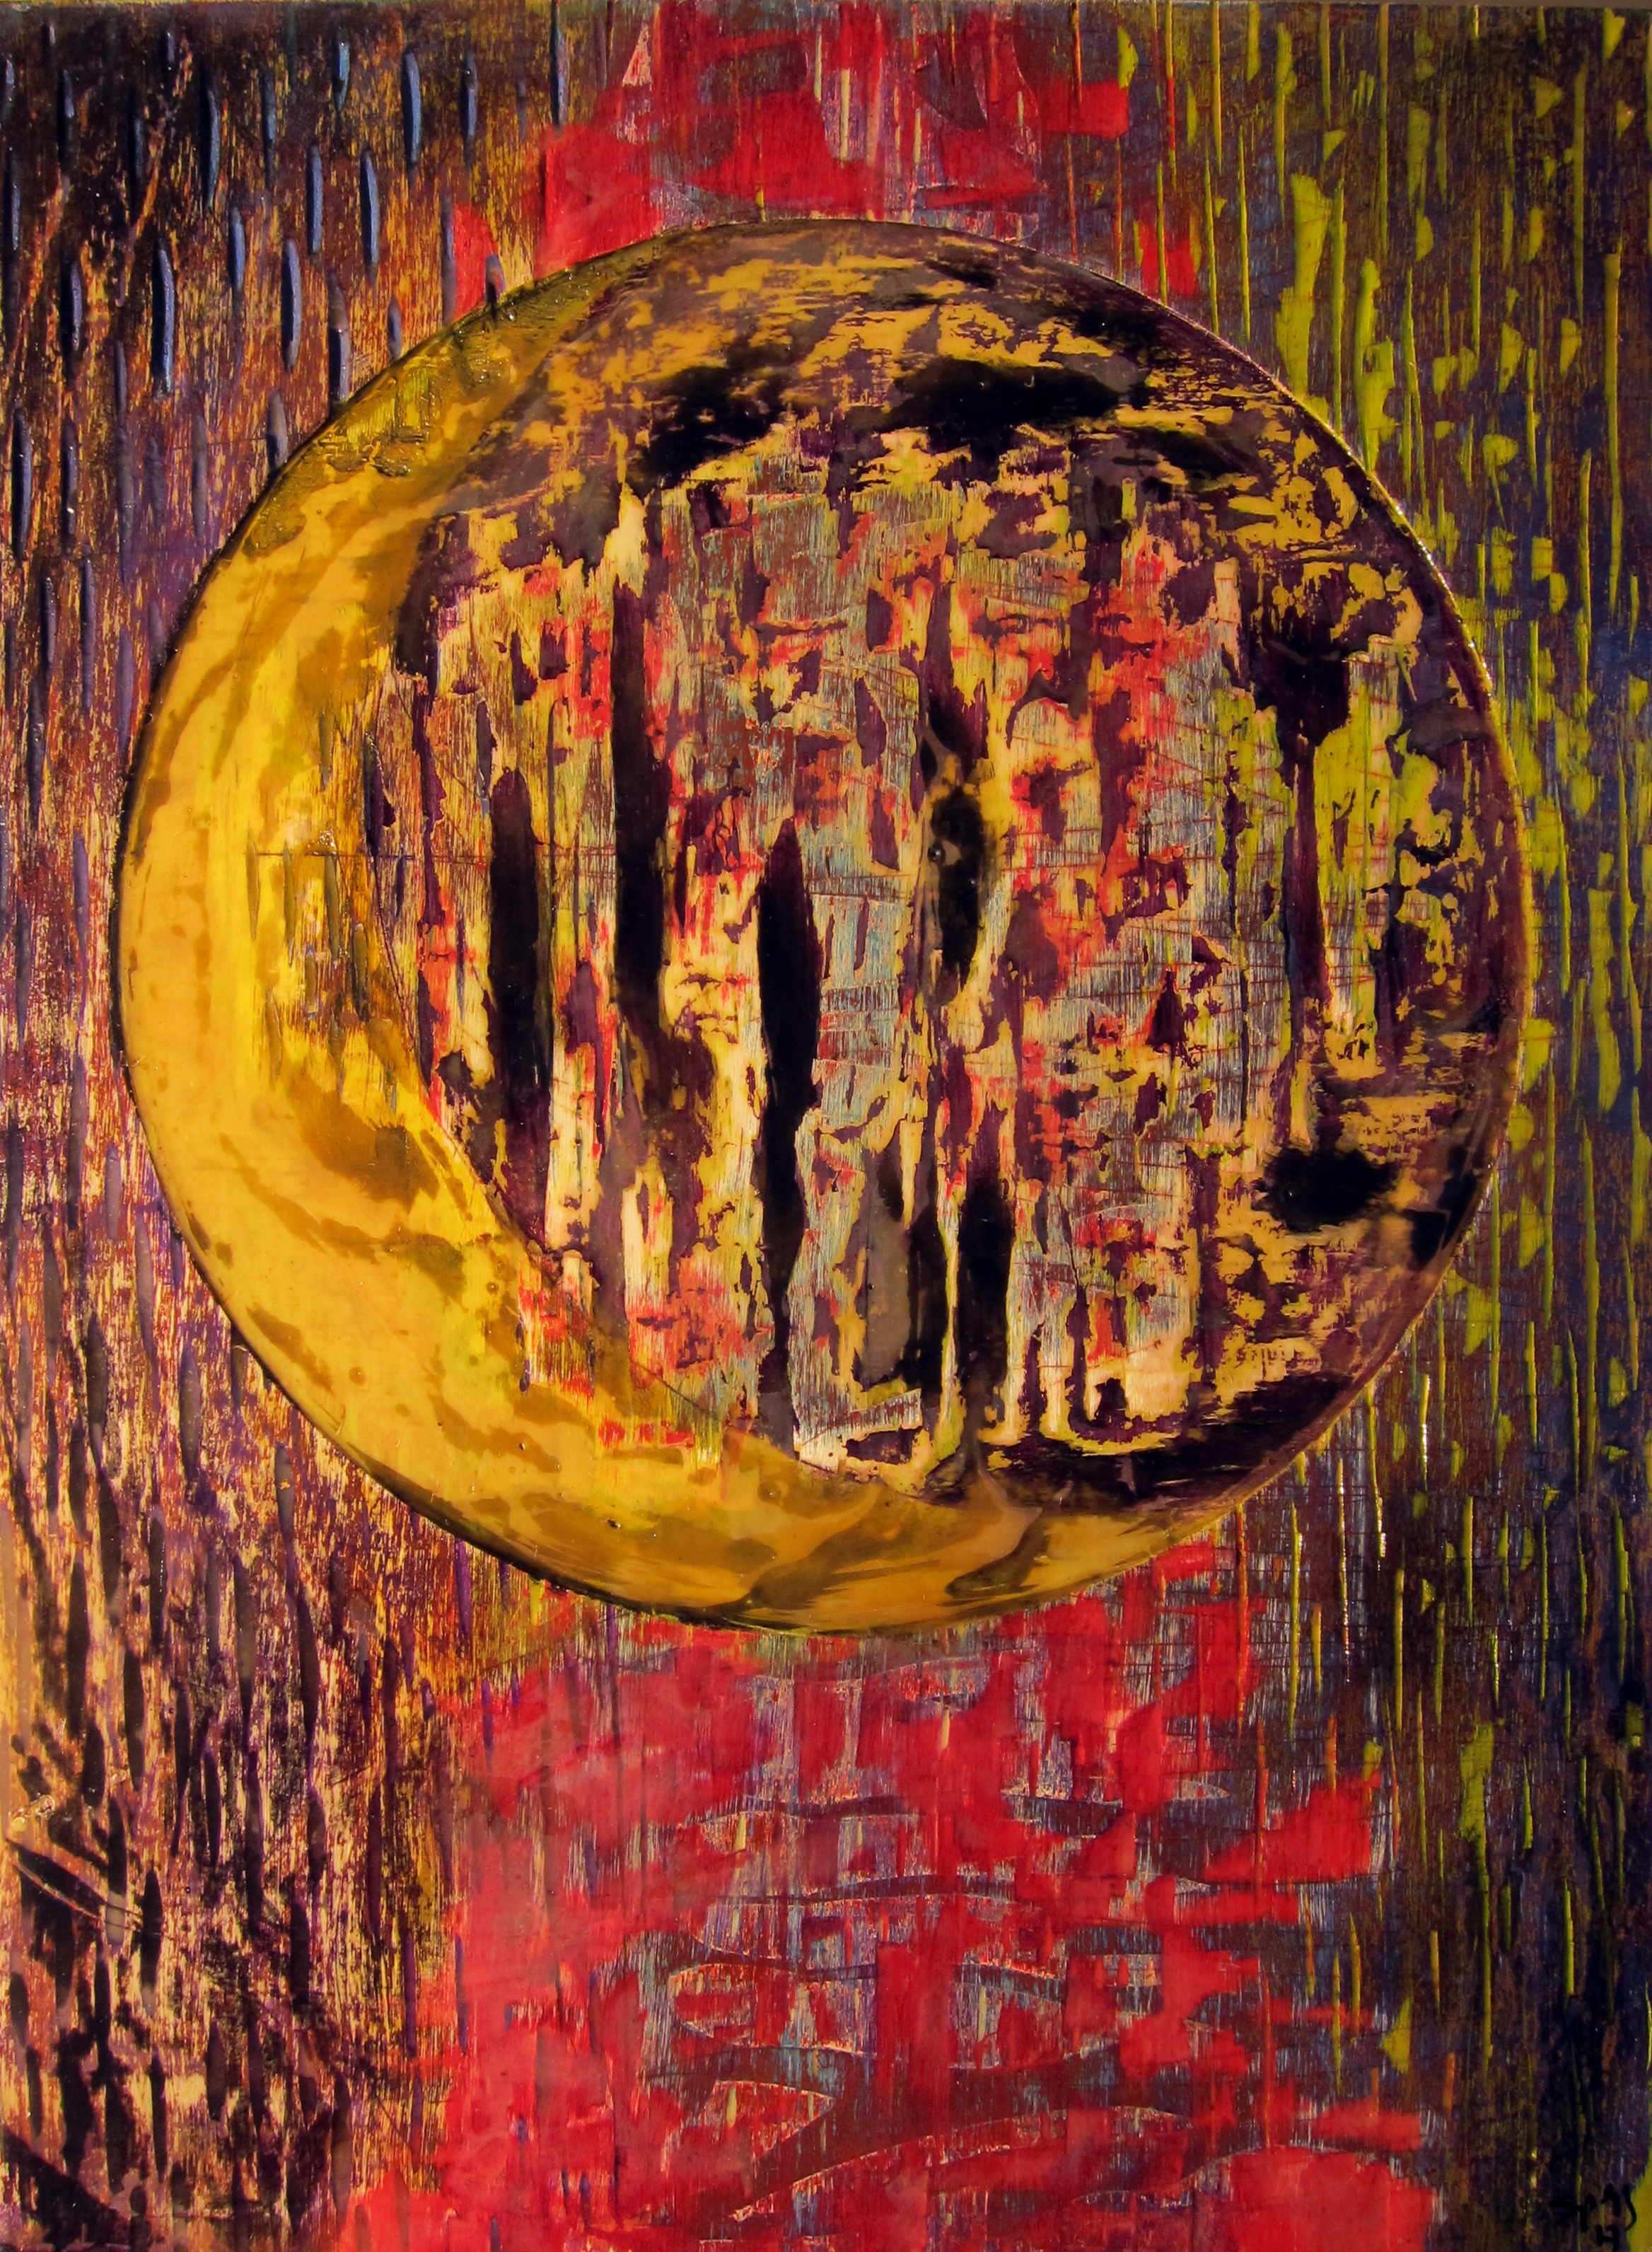 "Giovanni Spezzacatena - Rabideye Fine art ""Moon Over Scarlet Willows"" 12""x16""x2"" on cradled wood panel - mixed media $140"